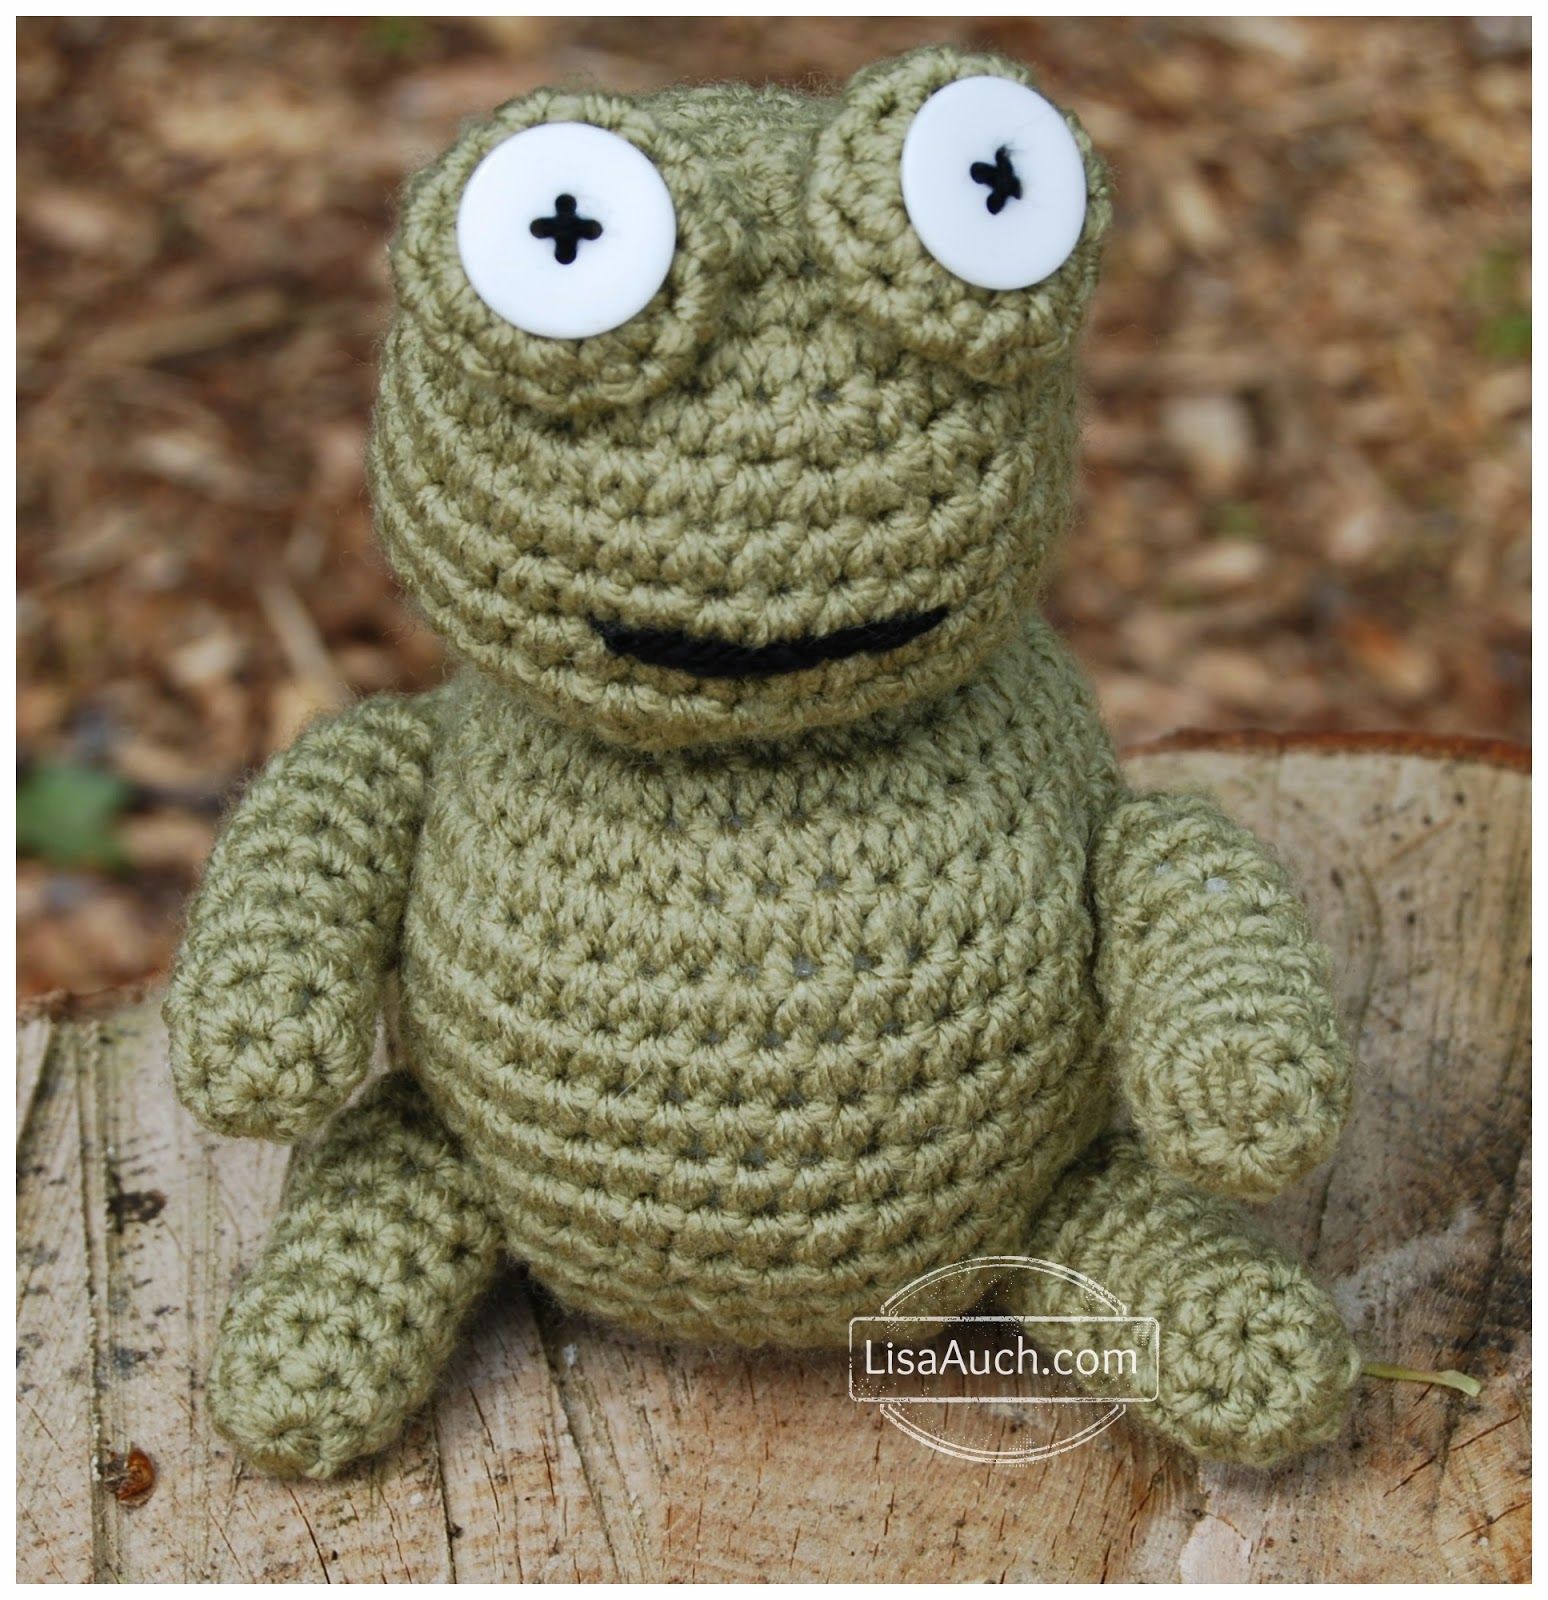 FREE Amigurumi Patterns (Free Crochet Toy Patterns) | Crochet frog ...